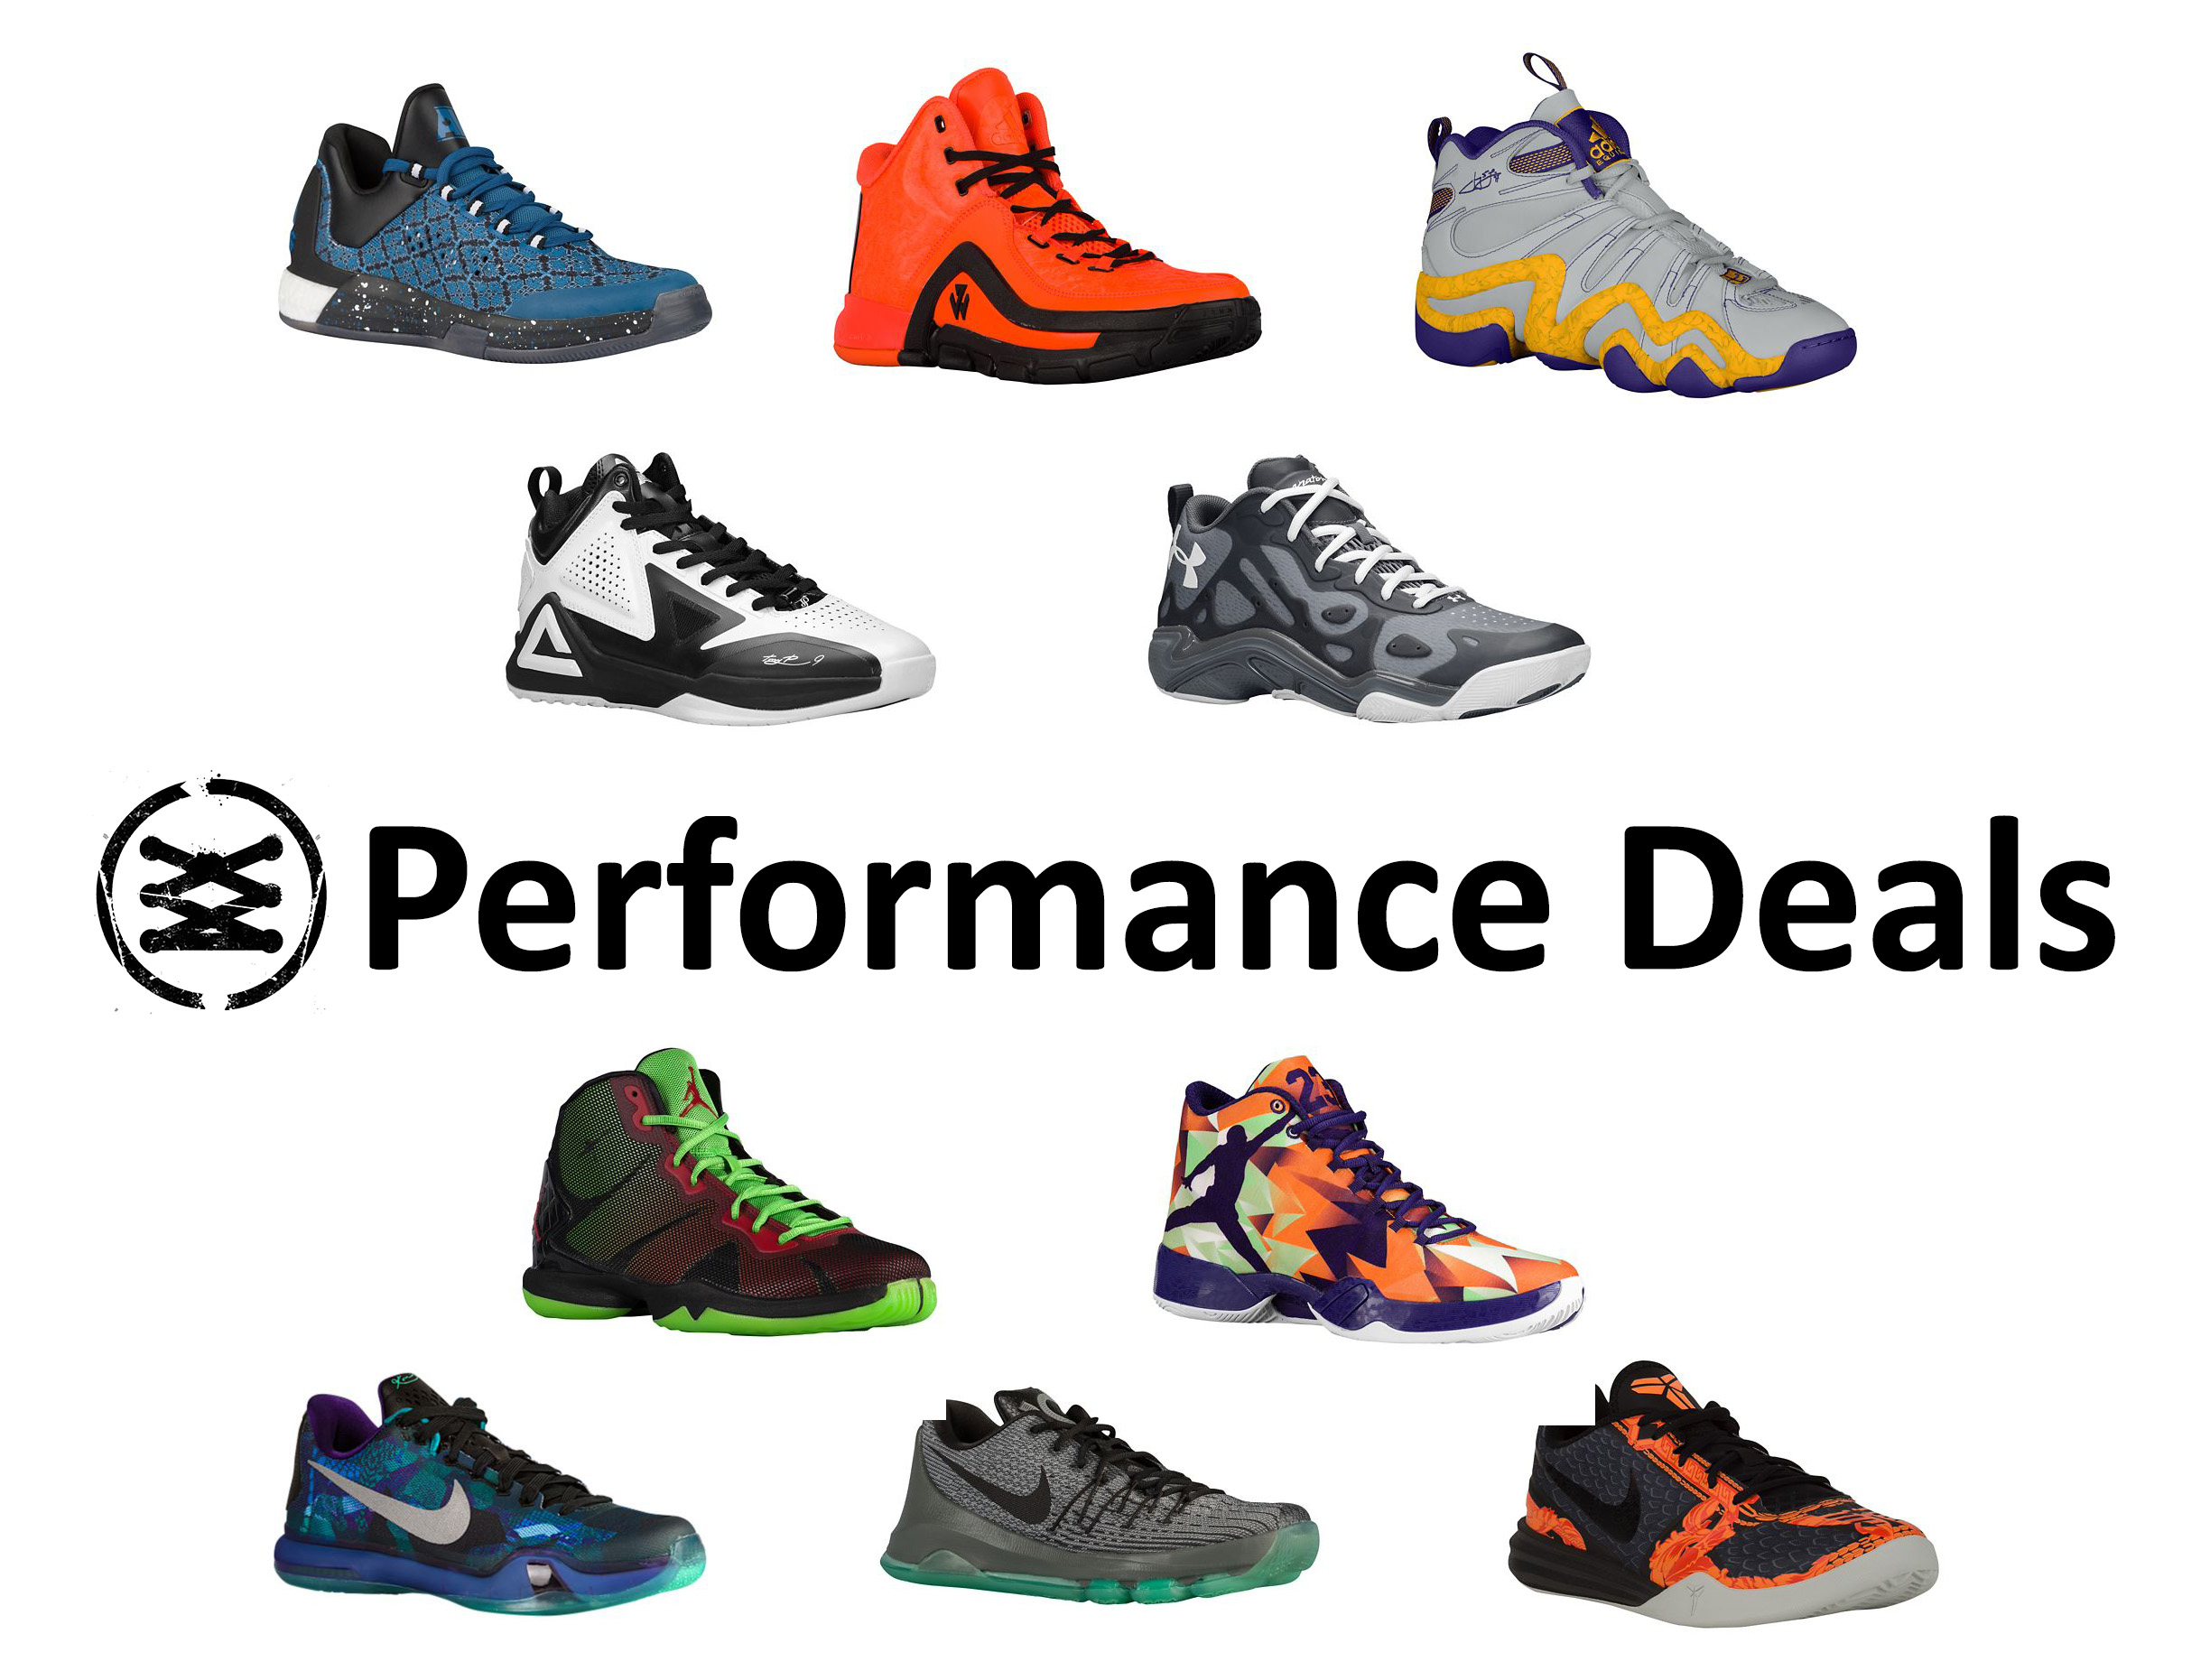 separation shoes 684ec bf626 Performance Deals: 20% Off Basketball Shoes at Eastbay ...